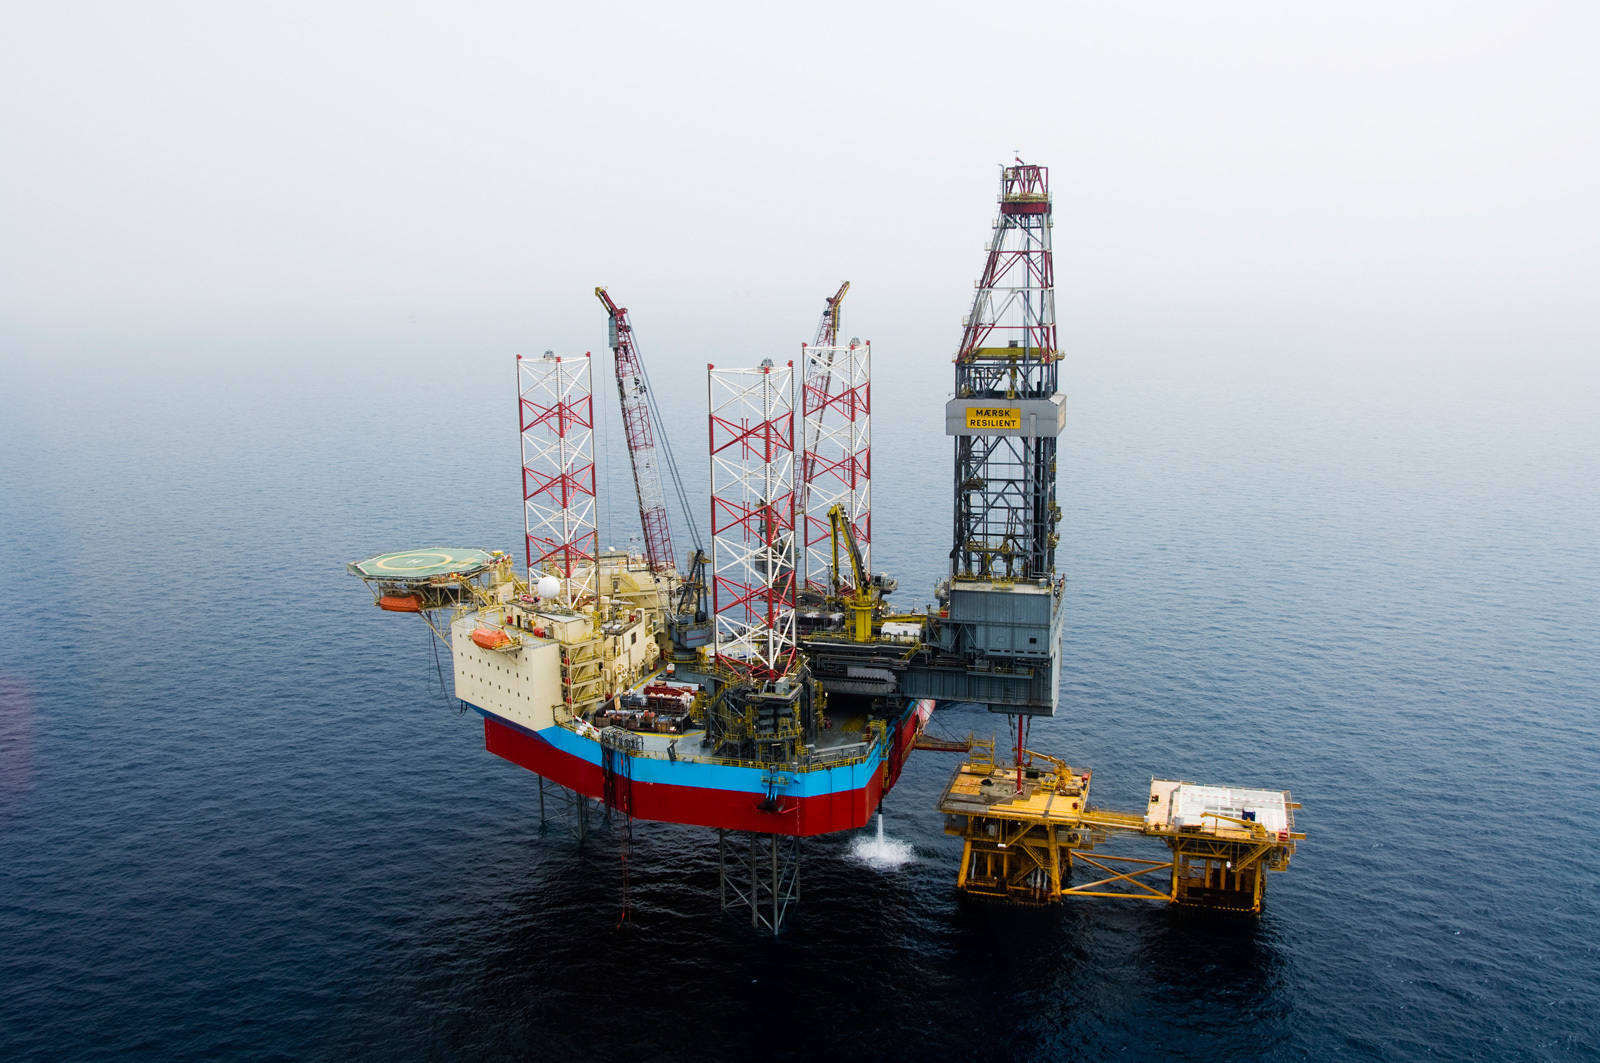 The Maersk Resilient jack-up rig, which was drilling the Lacewing well